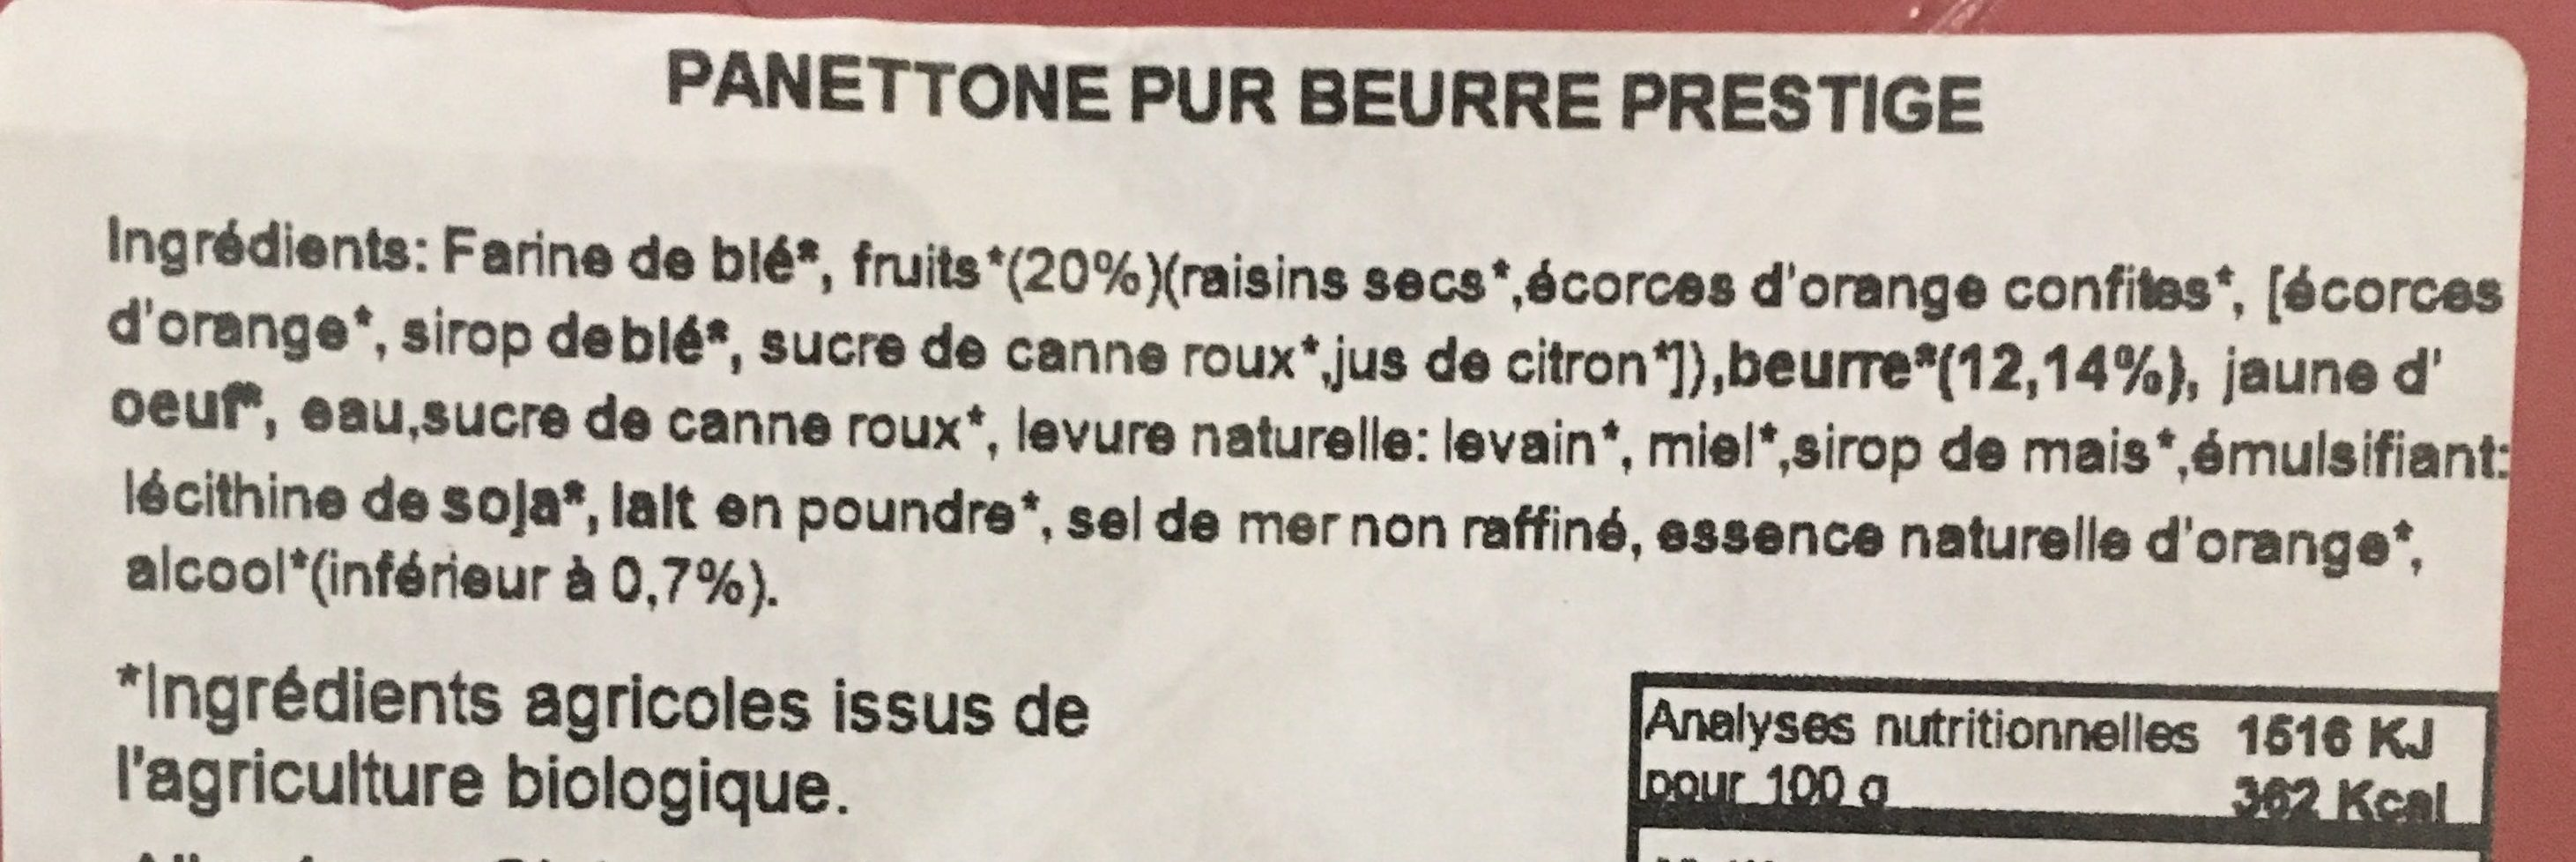 Panettone pur beurre - Ingredients - fr